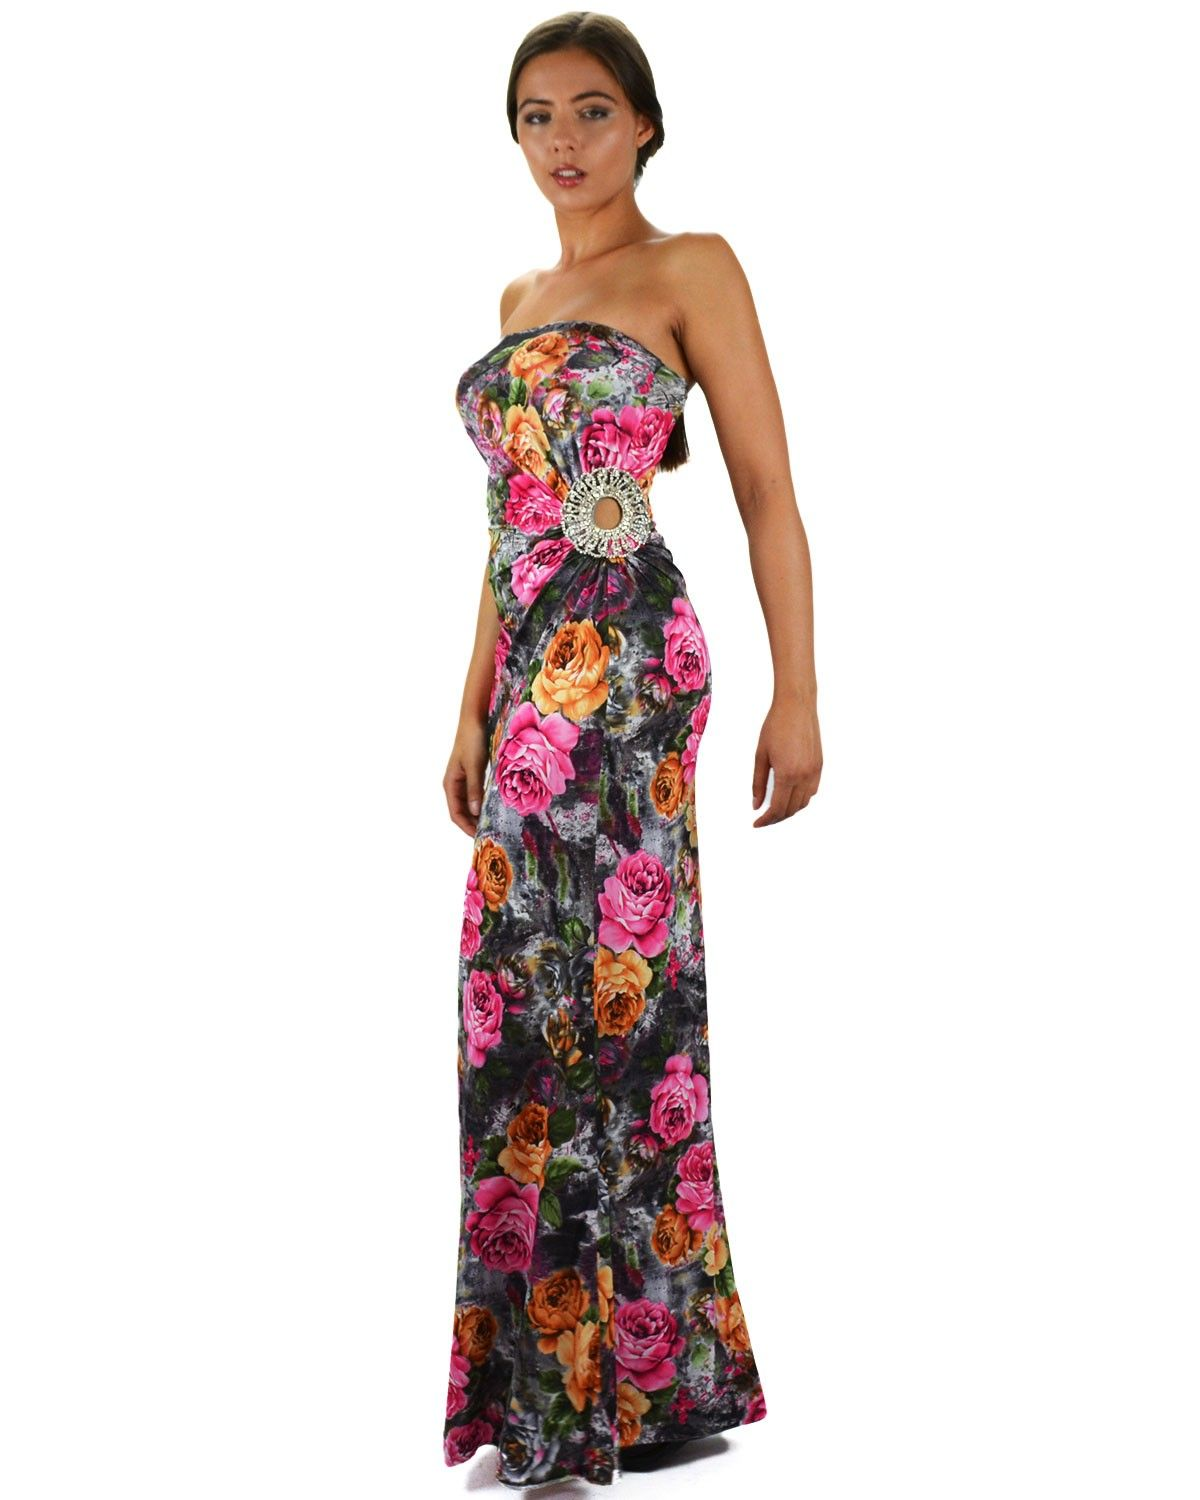 Floral maxi dresses long evening dresses womens maxi dress unique